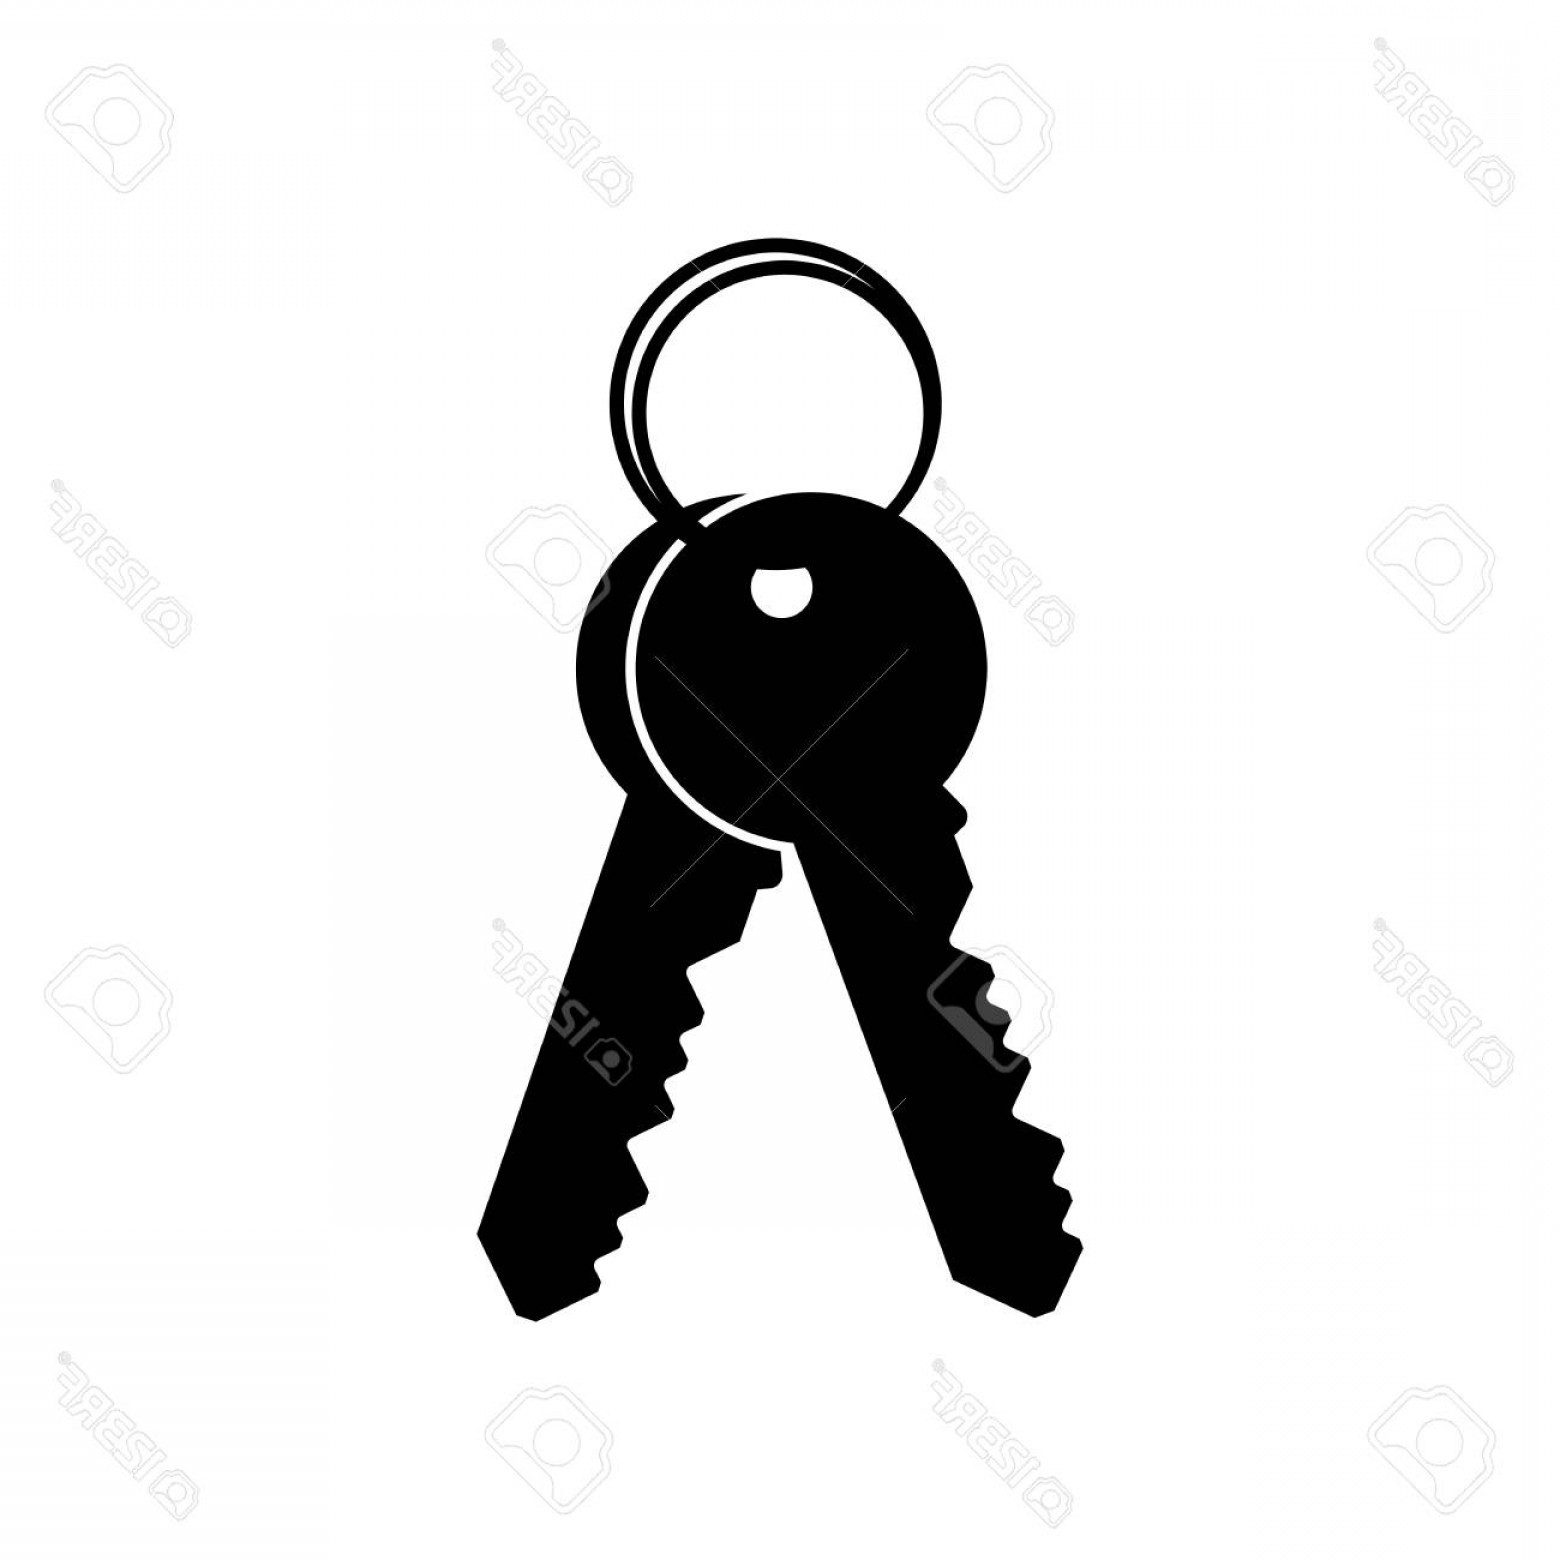 Hand With Ring Silhouette Vector: Photostock Vector Simple Keys With Key Ring Silhouette Icon